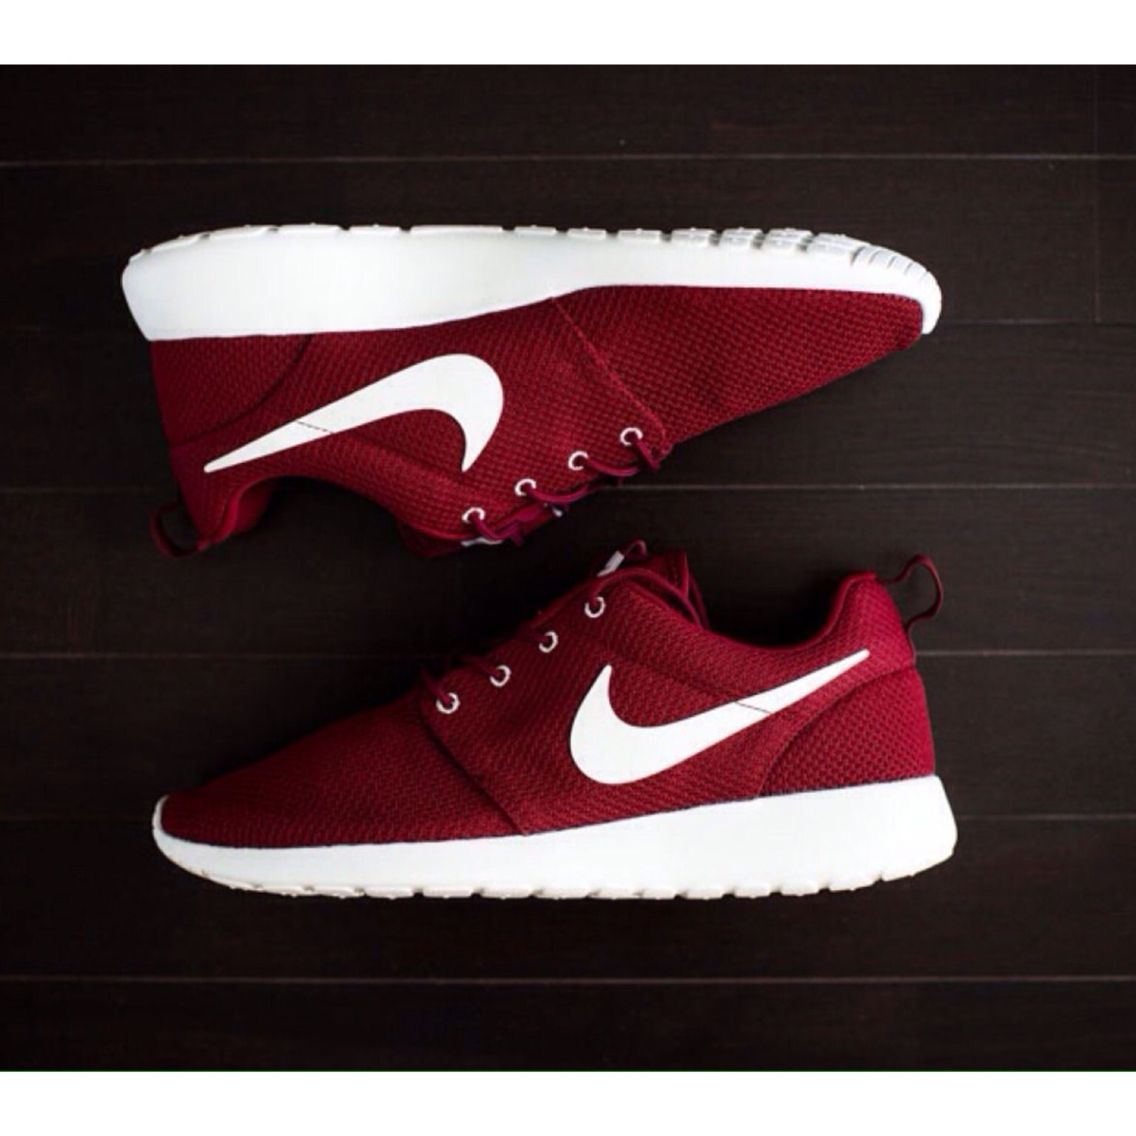 There are 77 tips to buy these shoes: nike red sneakers nike sneakers  burgundy nike roshe run roshe runs burgundy socks maroon nike roshe runs  womens bag ...